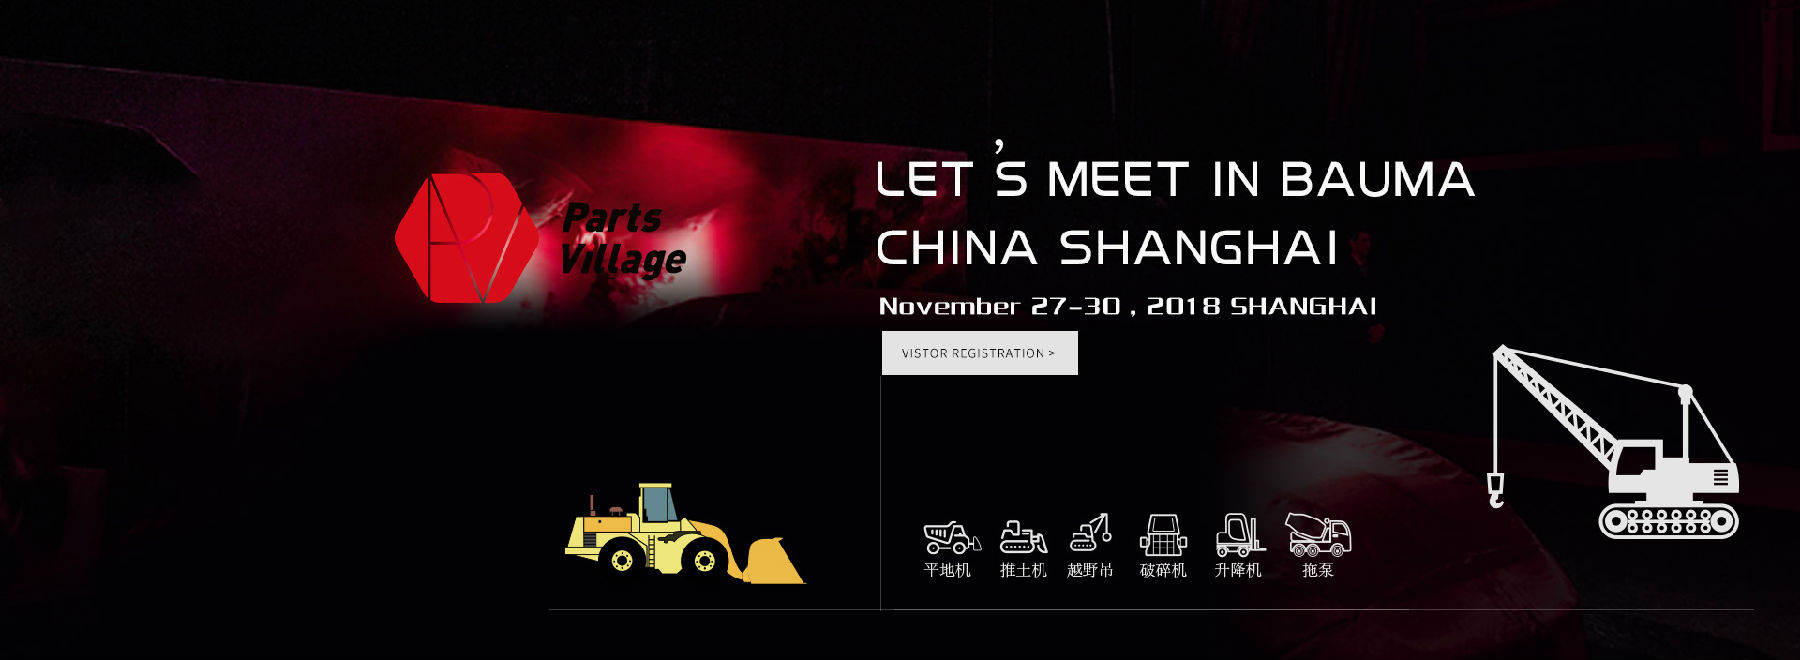 Welcome to visit us in BAUMA CHINA SHANGHAI ON NOVEMBER 27-30,2018